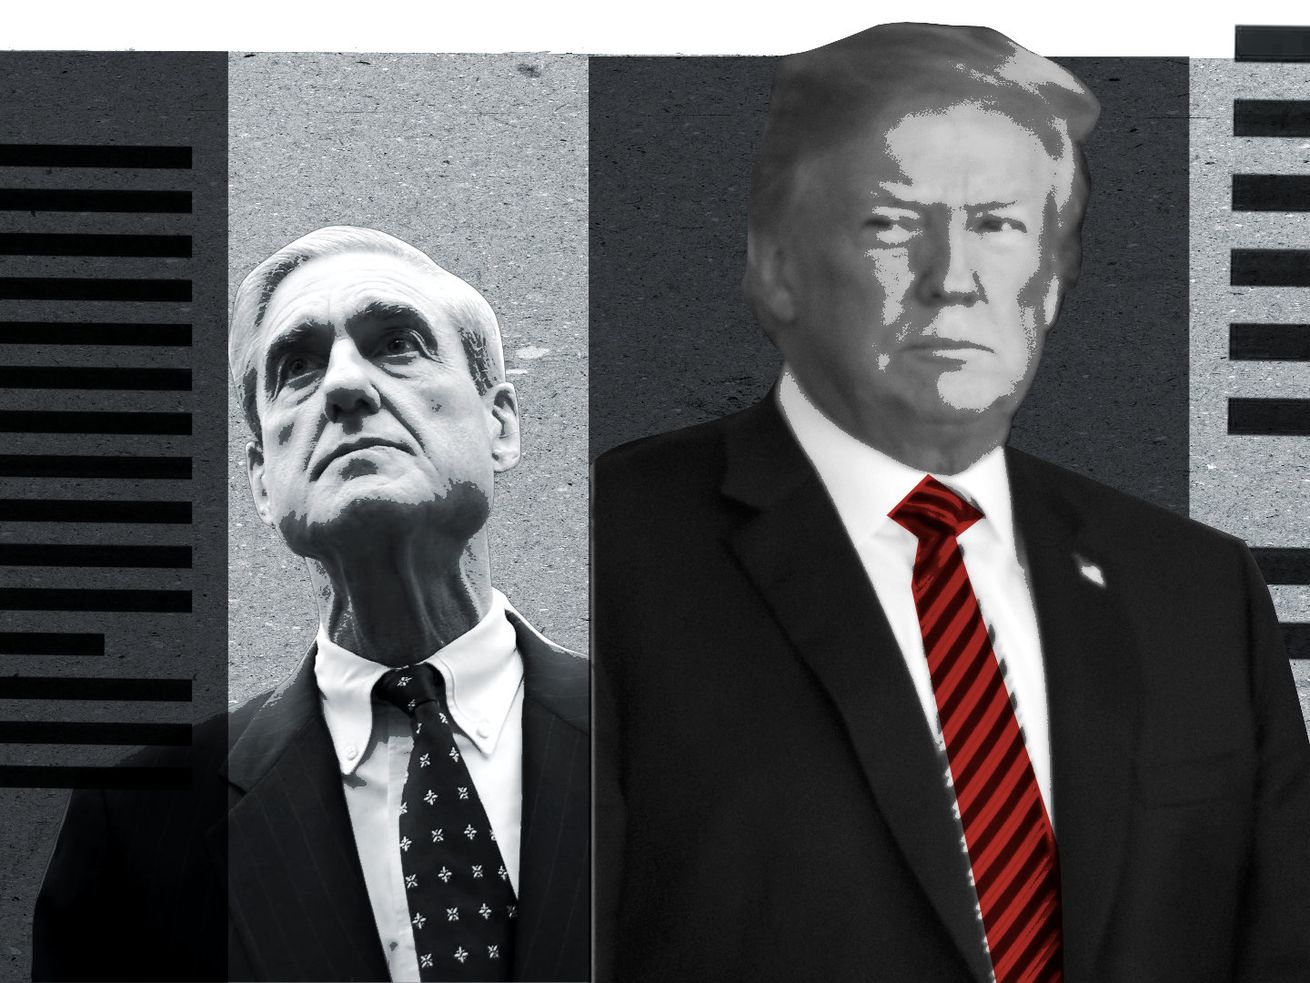 The Mueller investigation has gotten closer to Trump